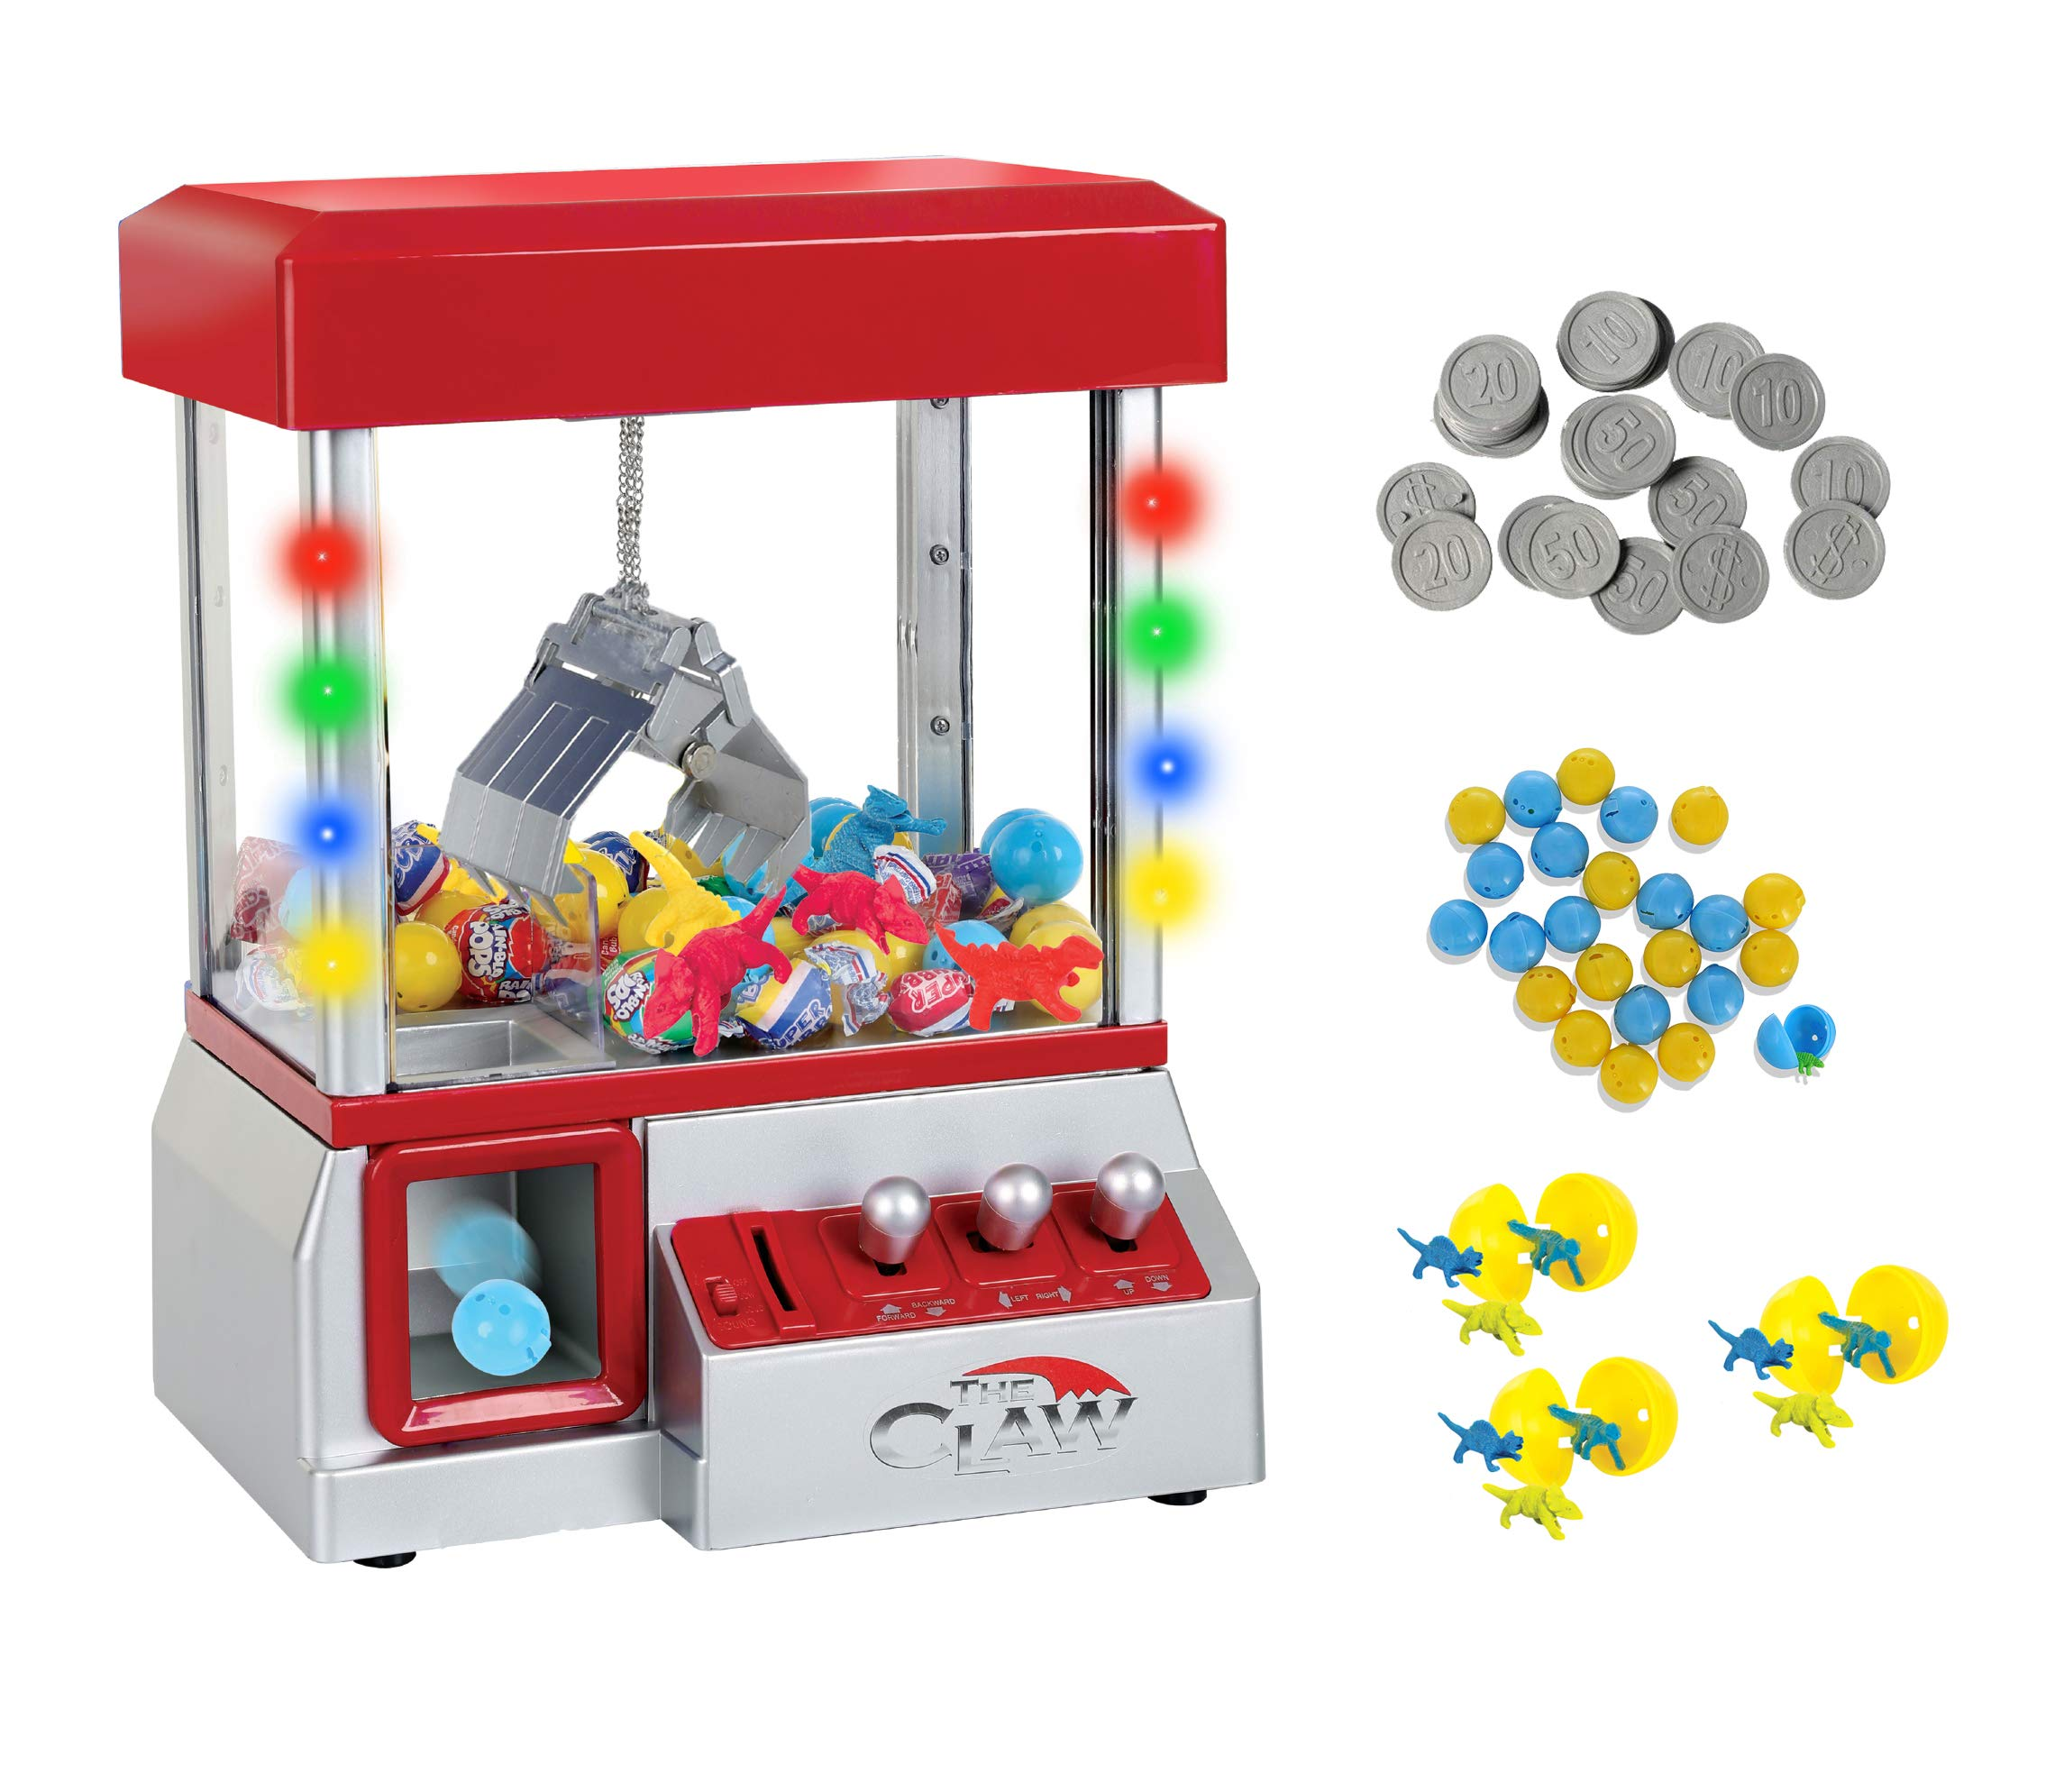 TSF TOYS Claw Game Machine-Kids Mini Arcade Grabber- Toy Candy Dispenser Crane Toy-with LED Lights and Adjustable Sound Switch-Bonus 24 Prizes (Red)